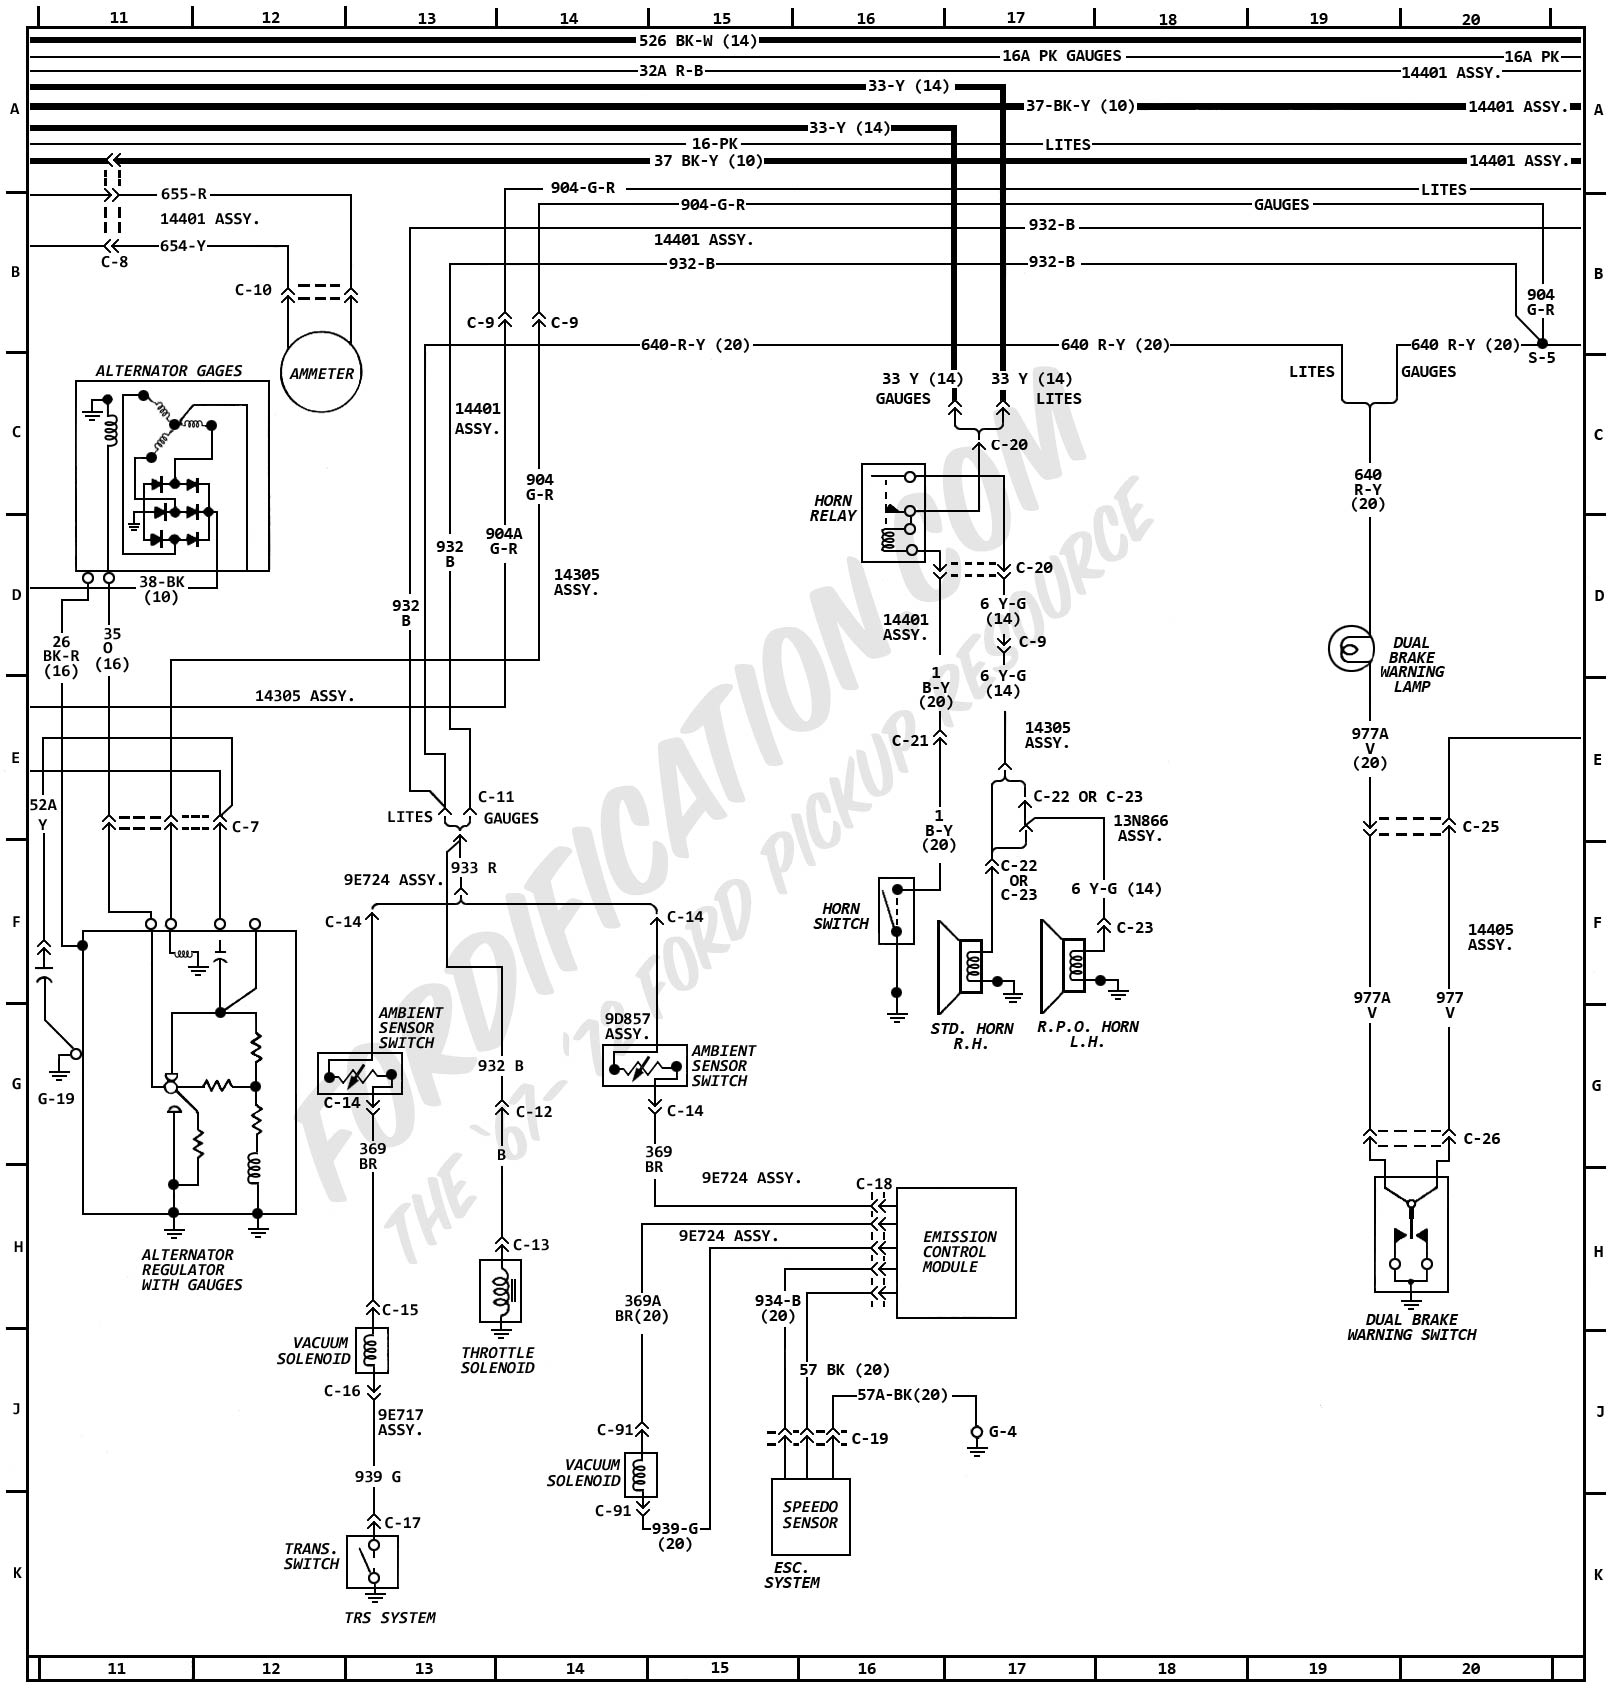 1972 ford truck wiring diagrams fordification com rh fordification com Ford E-150 Wiring-Diagram Ford Diesel Tractor Wiring Diagram